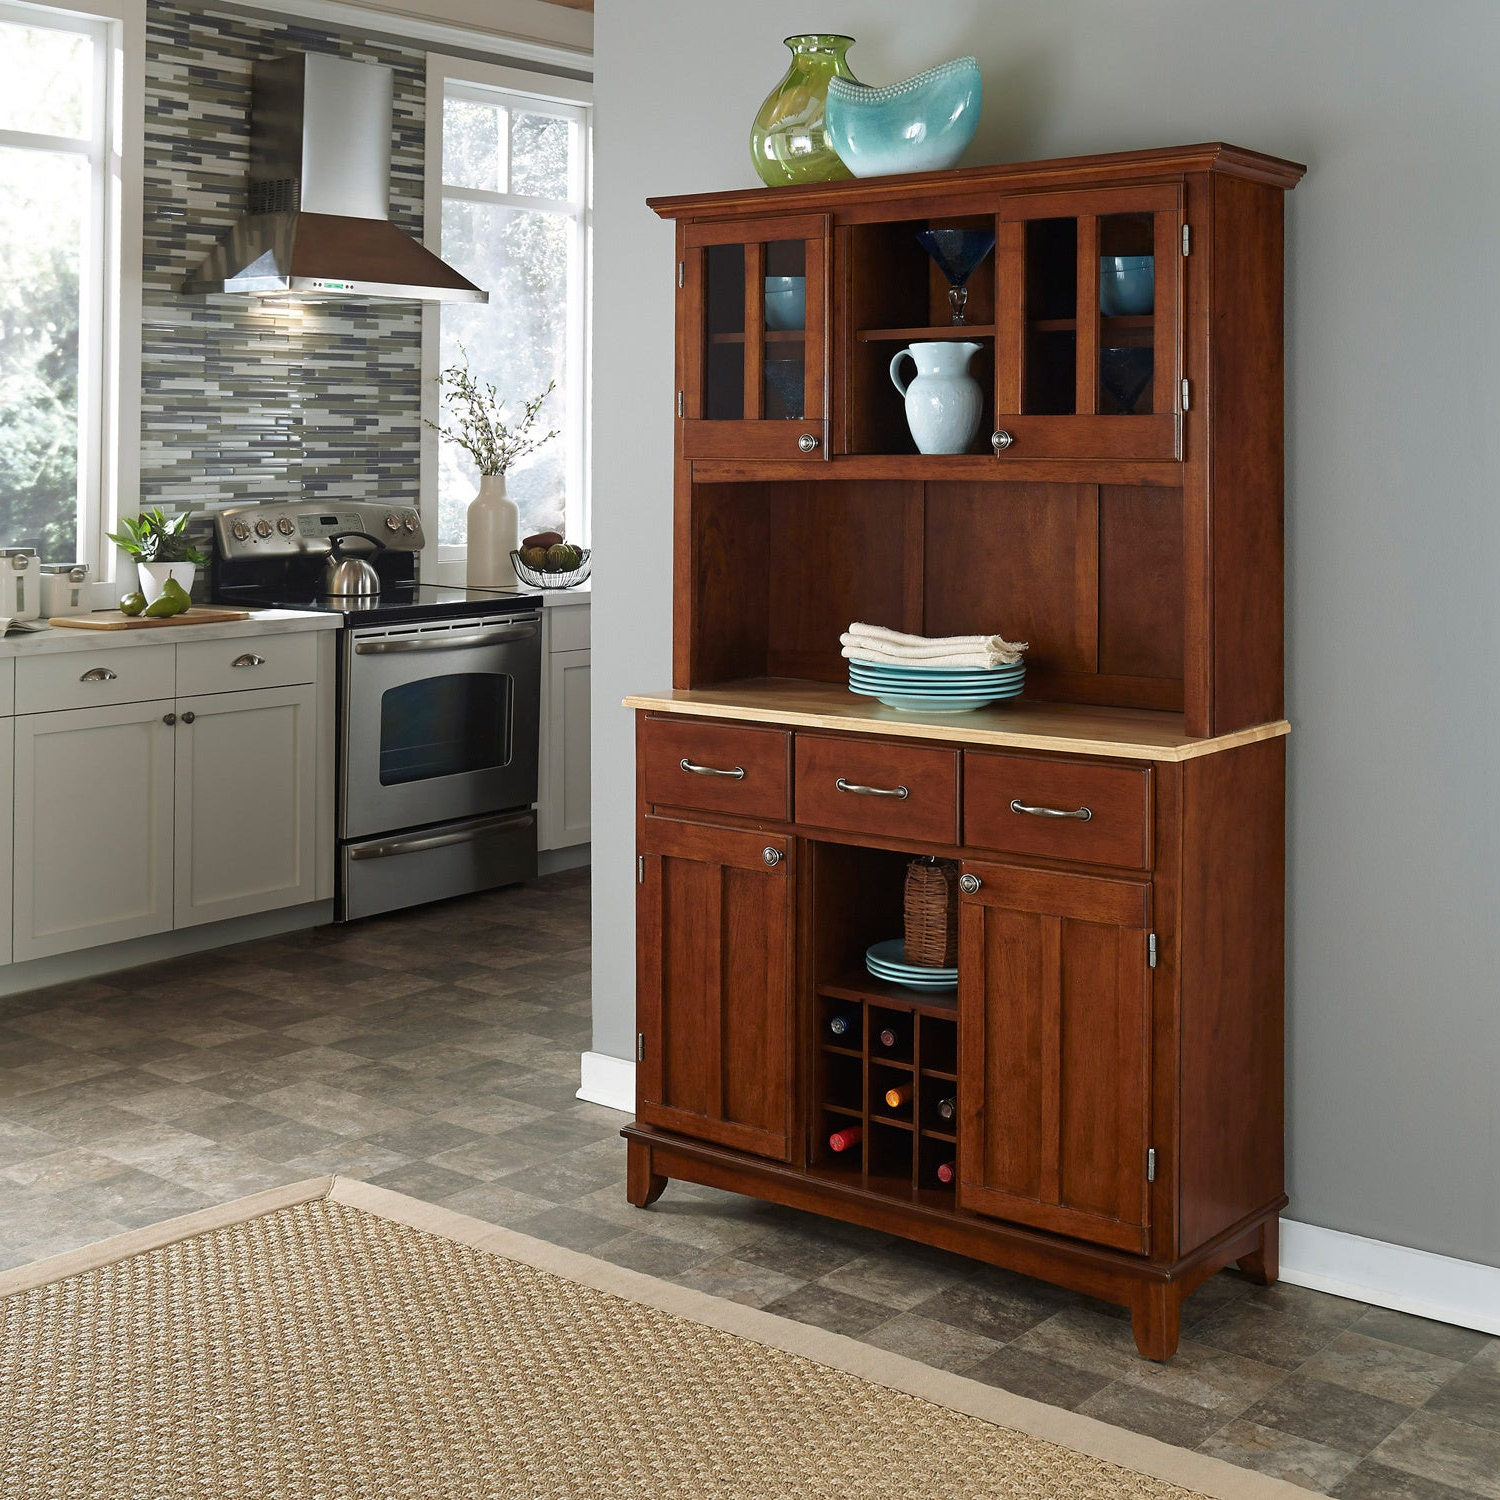 Medium Cherry Hardwood Hutch Buffet With Wood Tophome Styles In Medium Cherry Buffets With Wood Top (View 17 of 20)